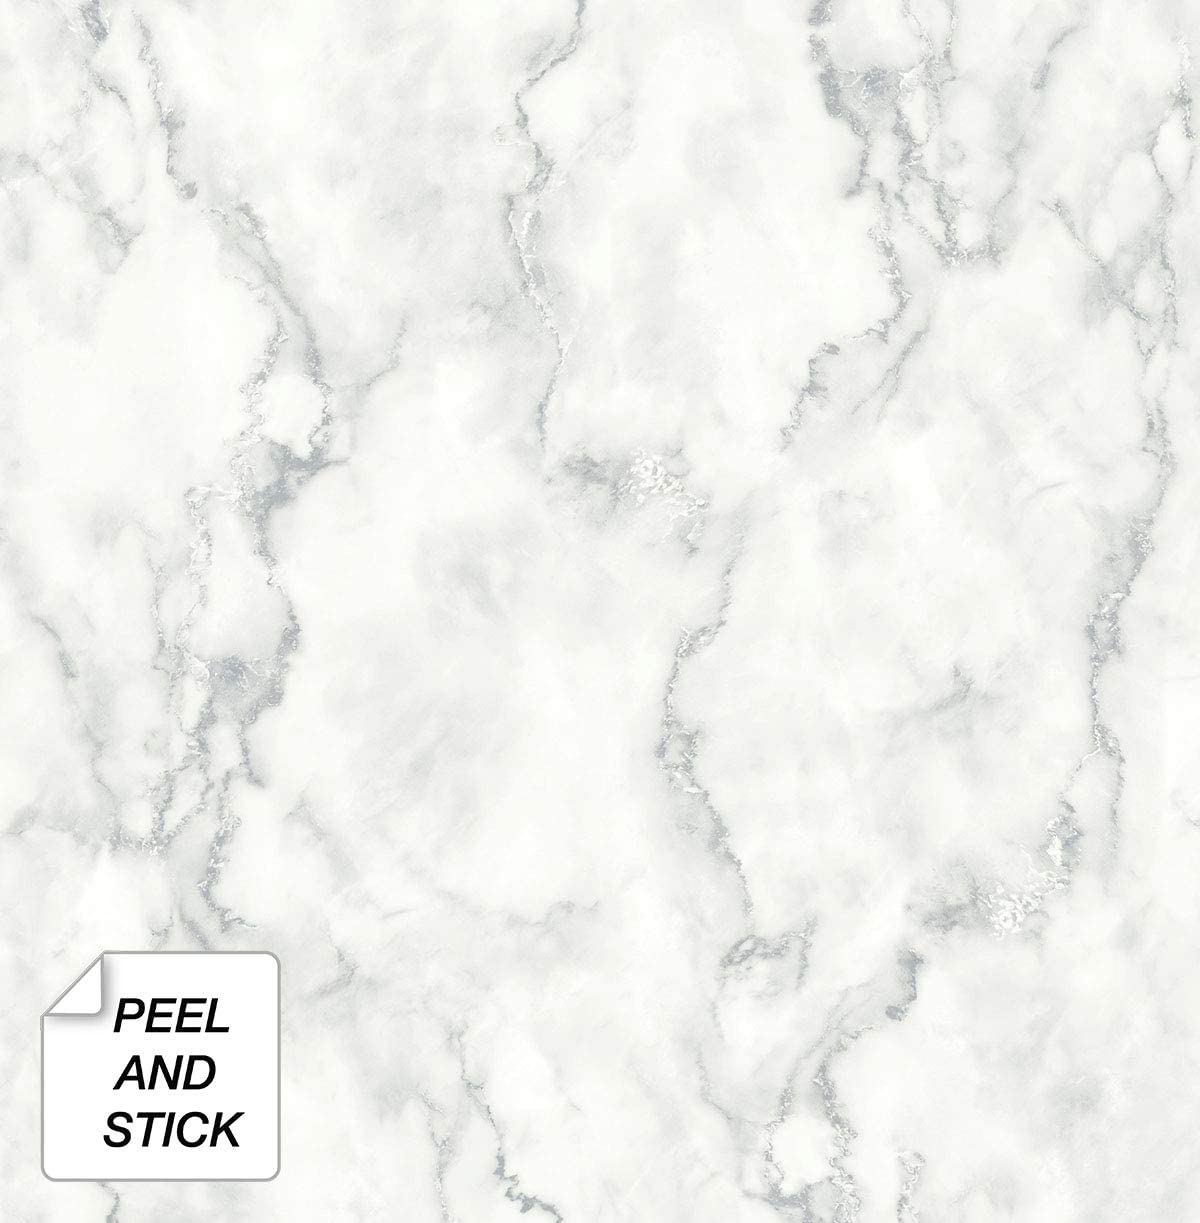 NextWall Faux Marble Texture Peel and Stick Wallpaper White 1200x1223